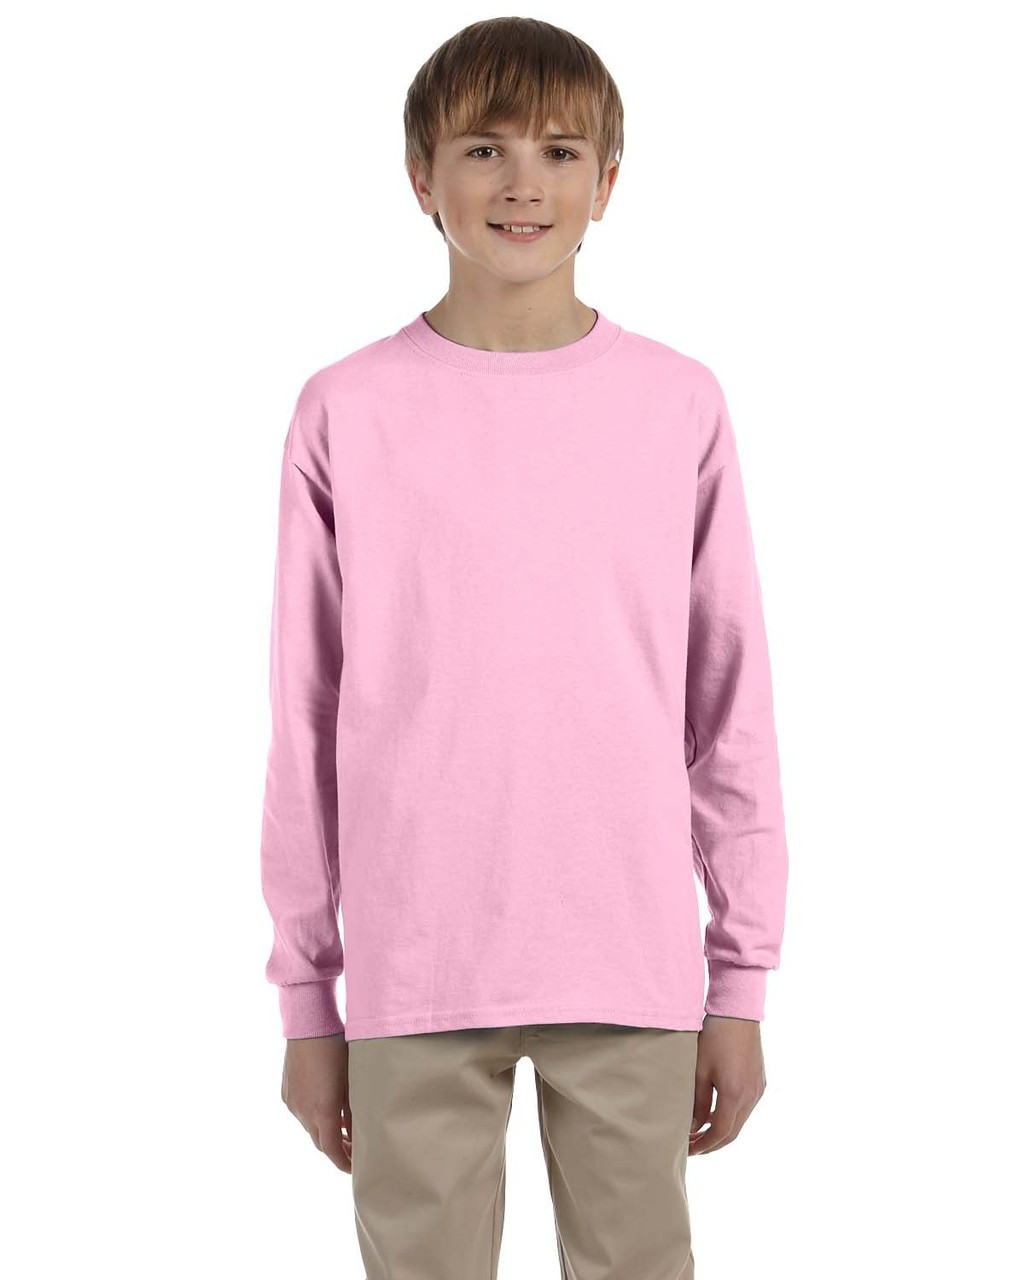 Light Pink - G240B Ultra Cotton Youth Long Sleeve T-Shirt | Blankclothing.ca